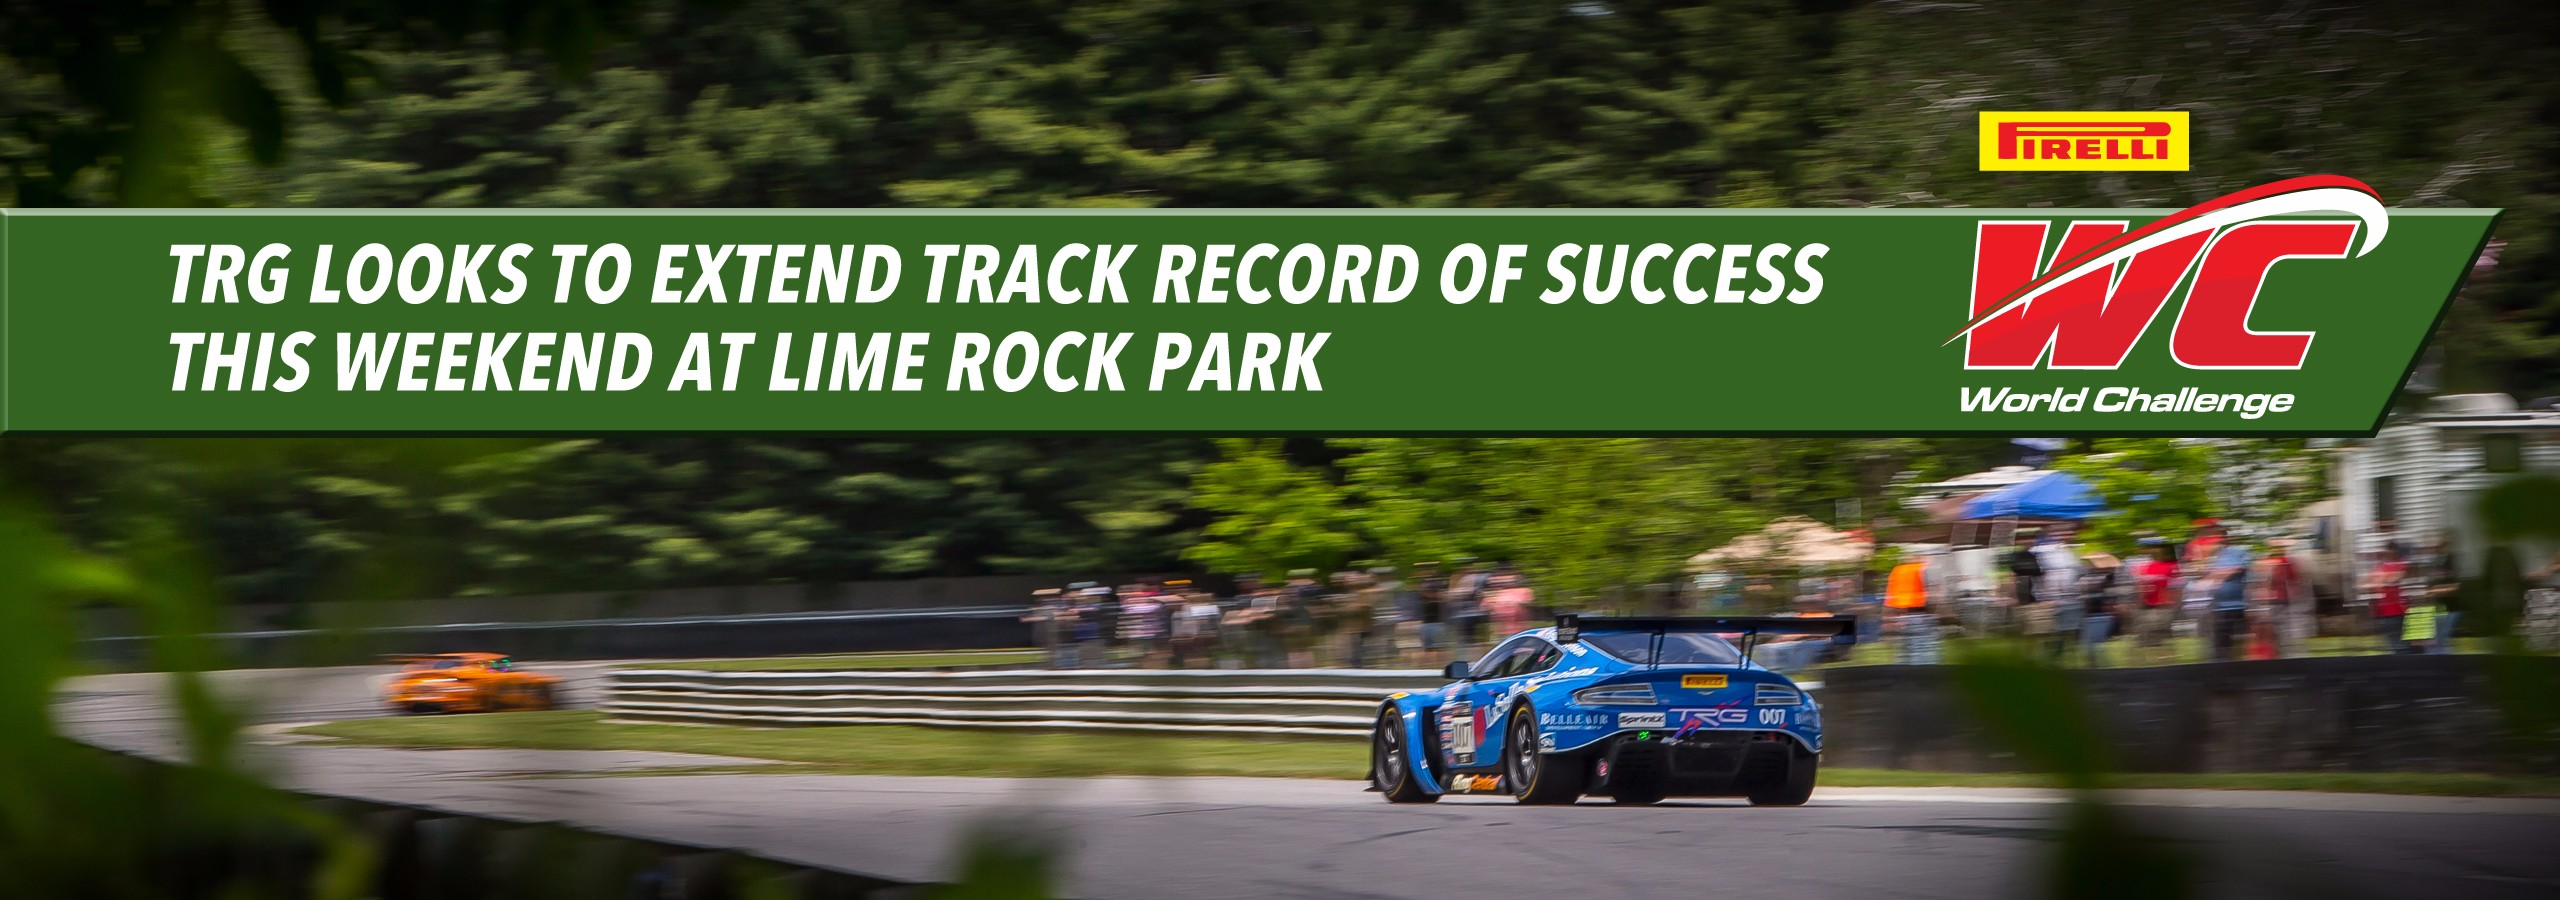 TRG Looks to Extend Track Record of Success this Weekend at Lime Rock Park